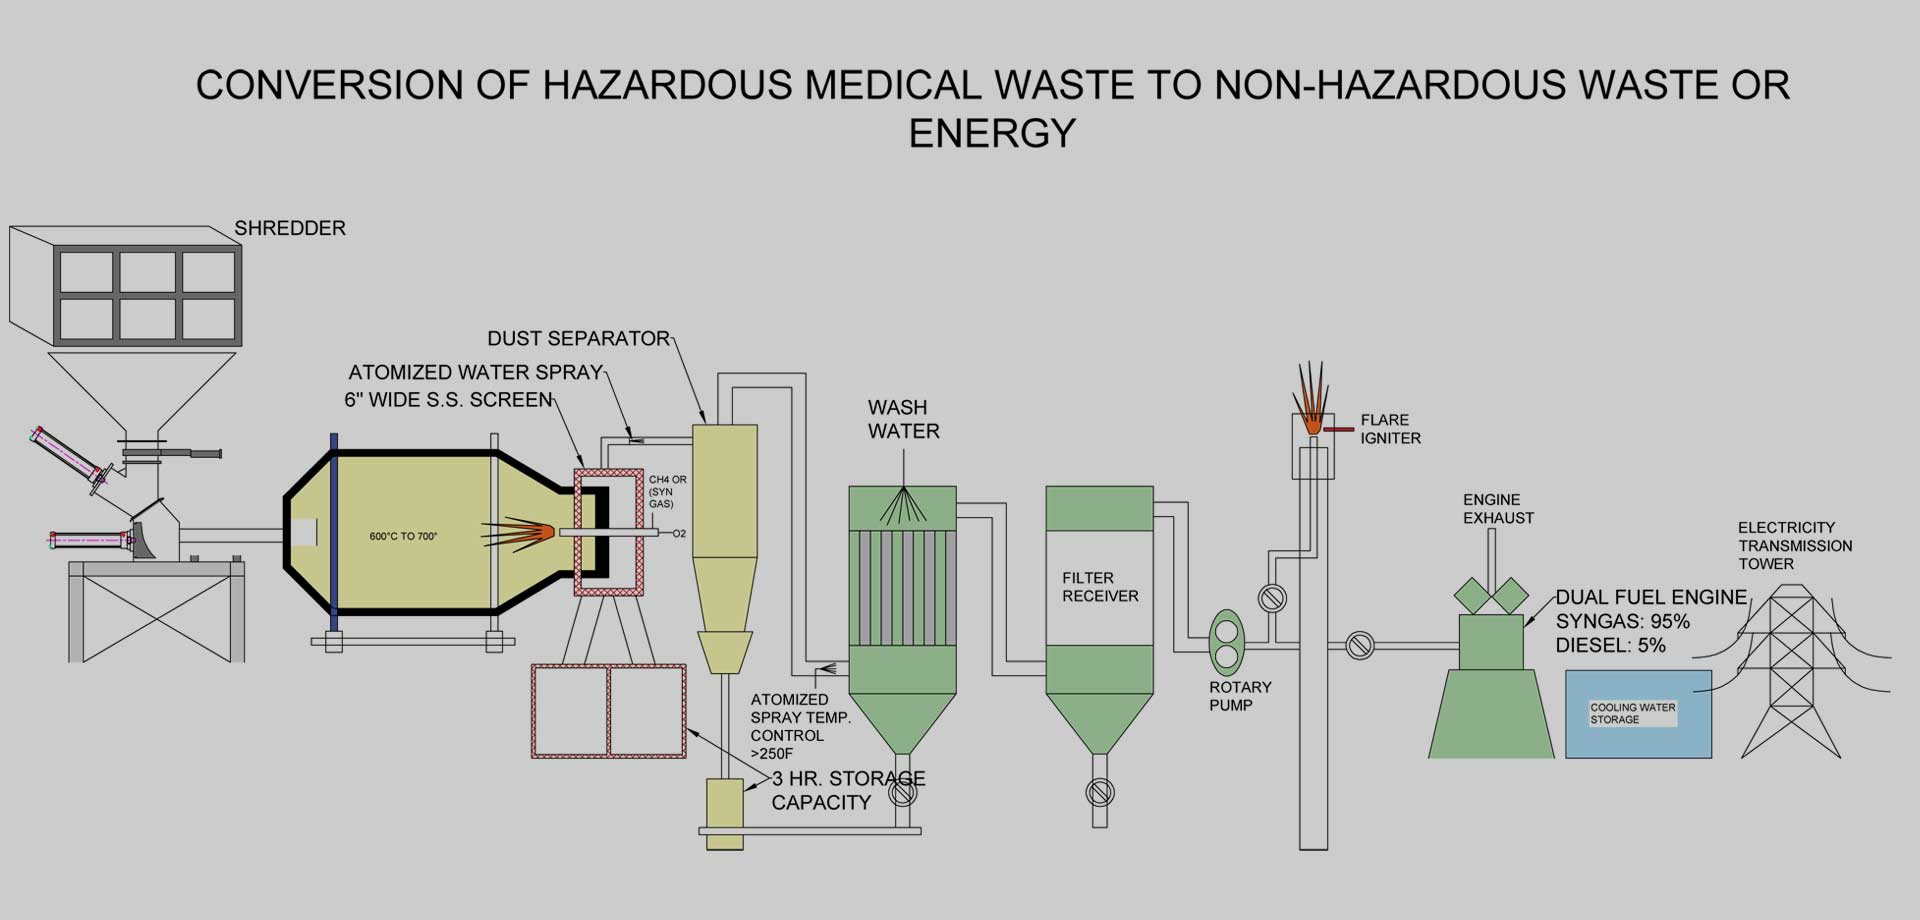 Reliance Medical Waste Energy